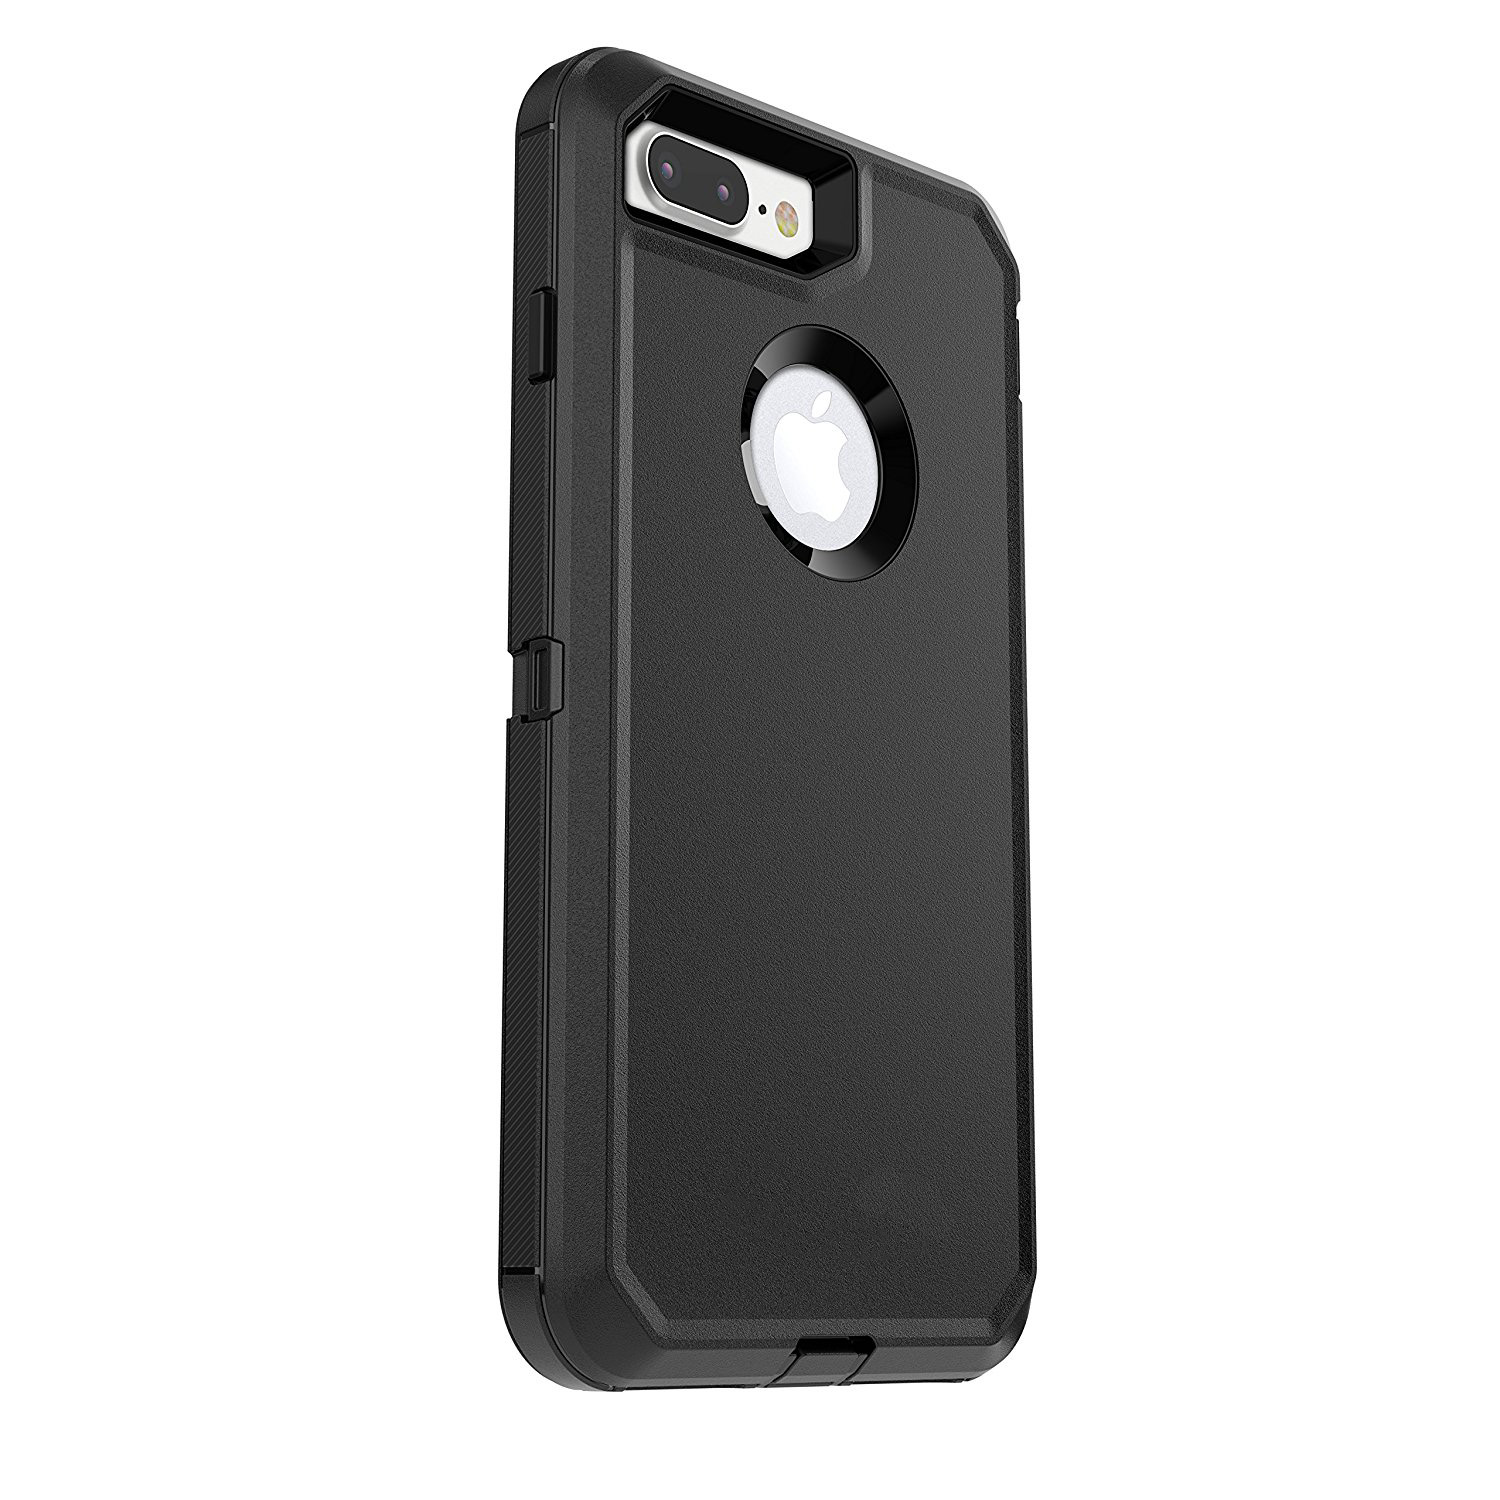 DEFENDER SERIES Case for iPhone 7 Plus ONLY Frustration Free Packaging